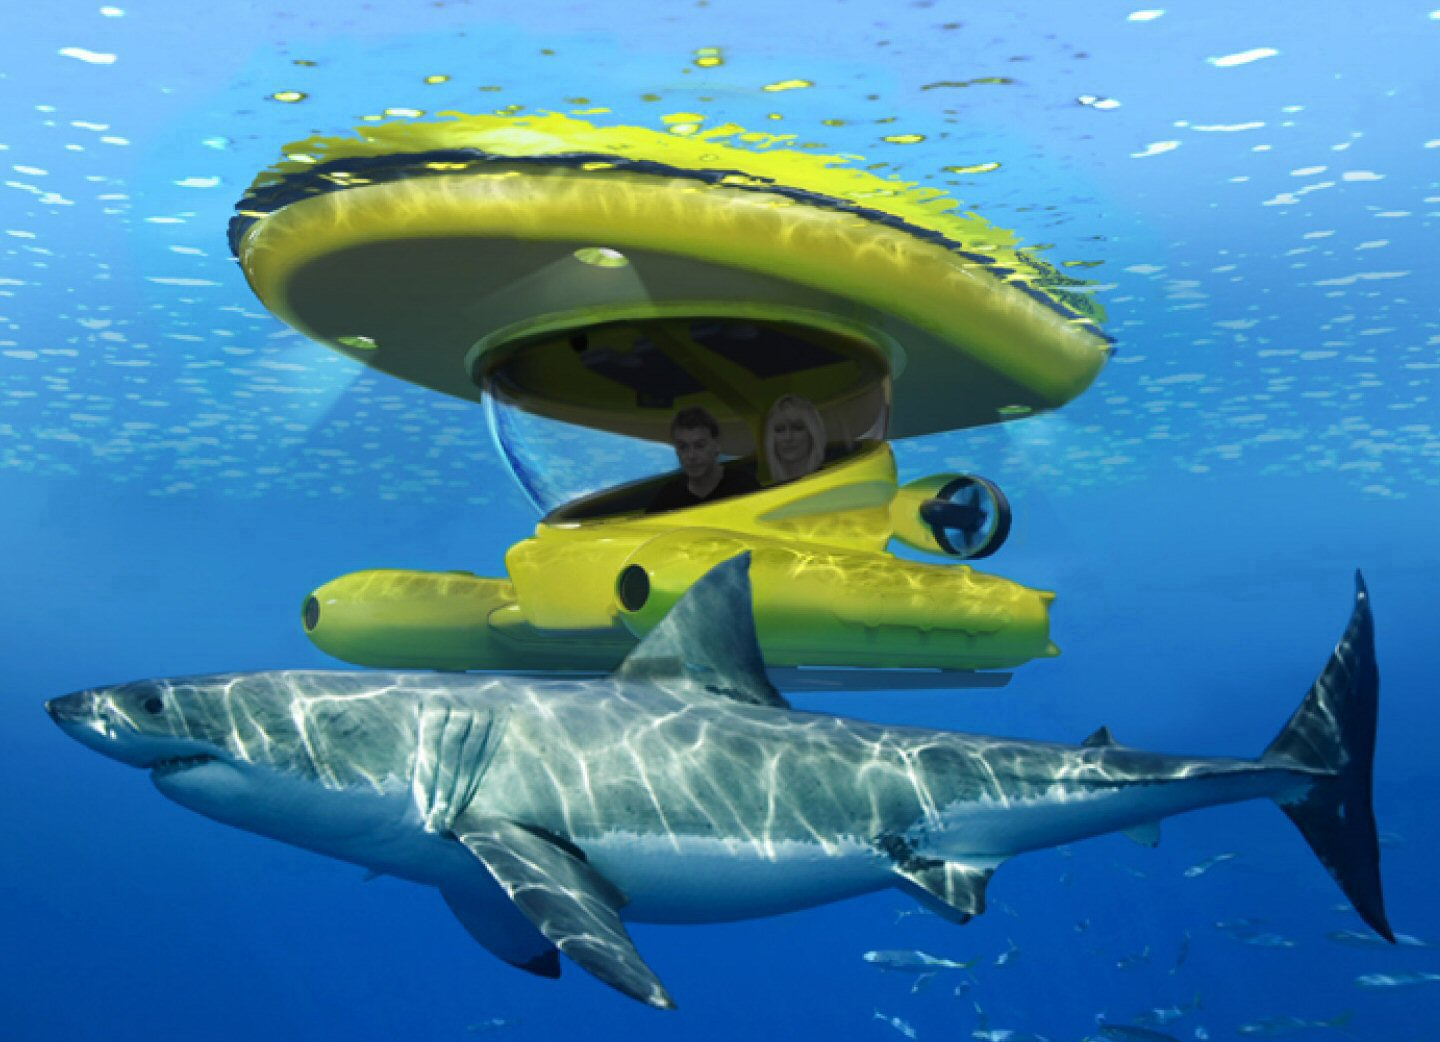 boat water toys with Sub Surface Msv Underwater Explorer on 10 Superyacht Tender Garages Will Absolutely Blow Mind further 66867 as well Sub Surface Msv Underwater Explorer moreover Buy Wet Banana Boat 1116 as well Stay Cool Summer.